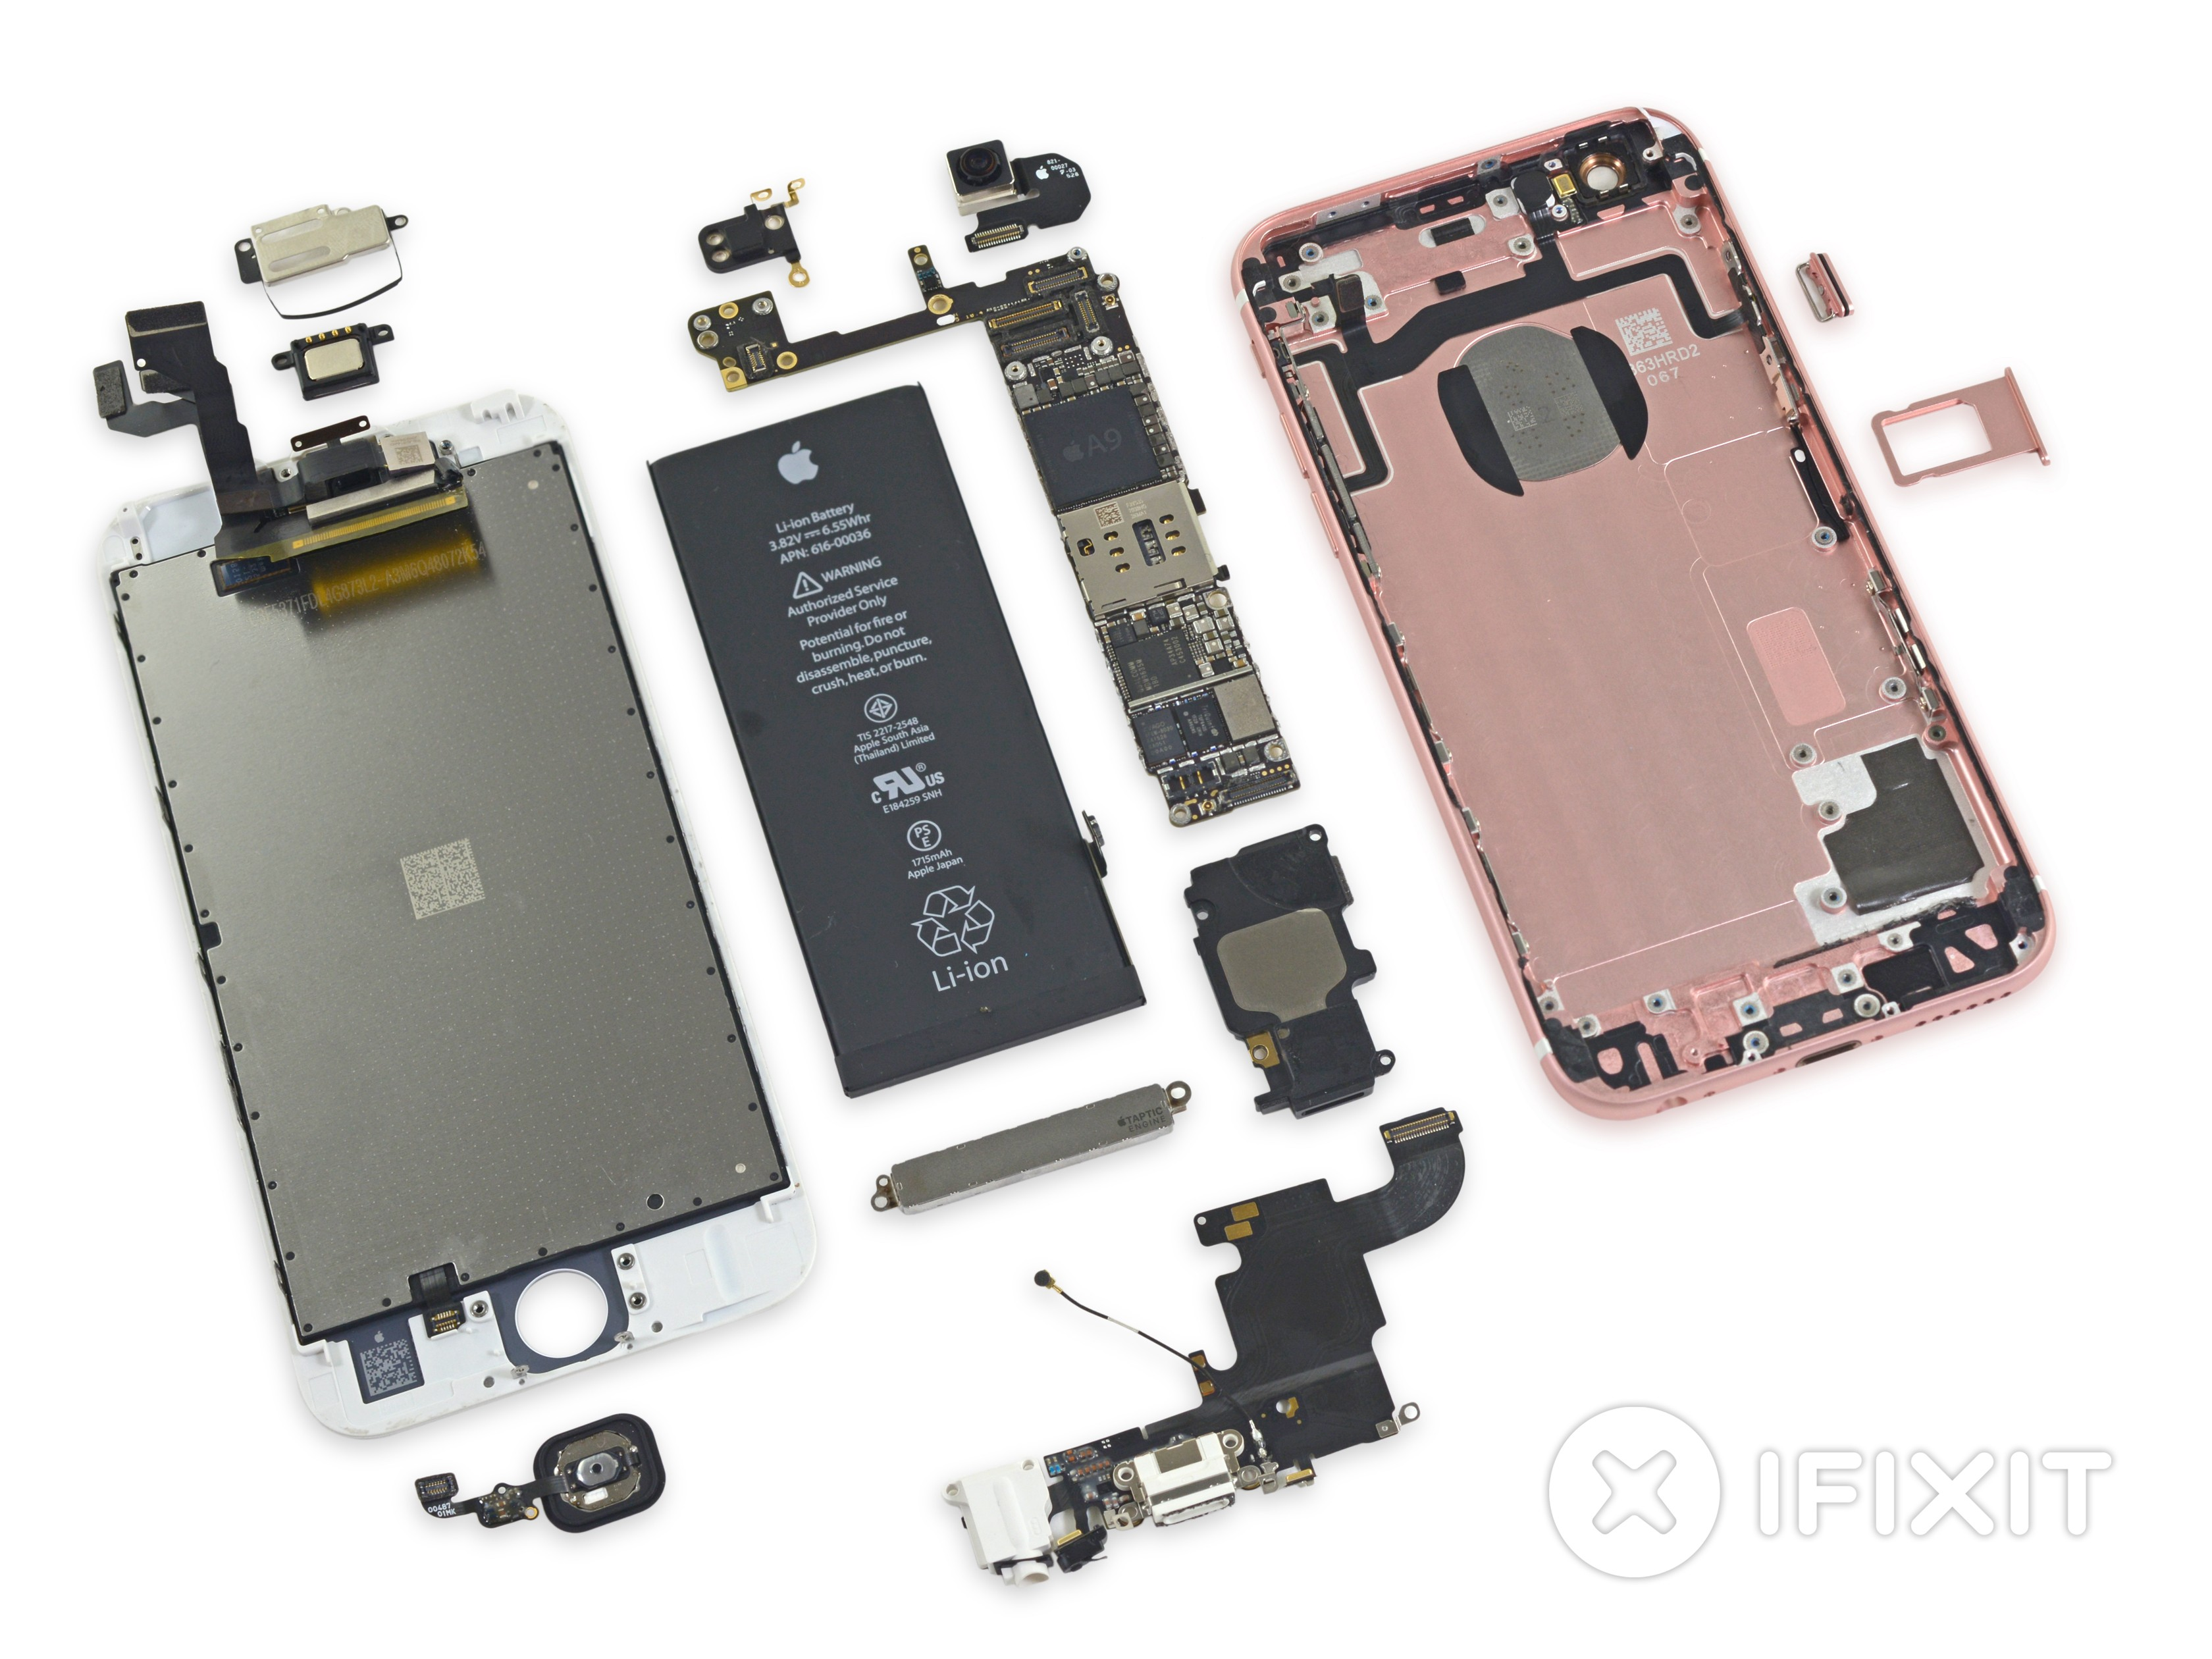 finest selection 32f30 24f99 iFixit Reveals 1715 mAh Battery in iPhone 6s Teardown